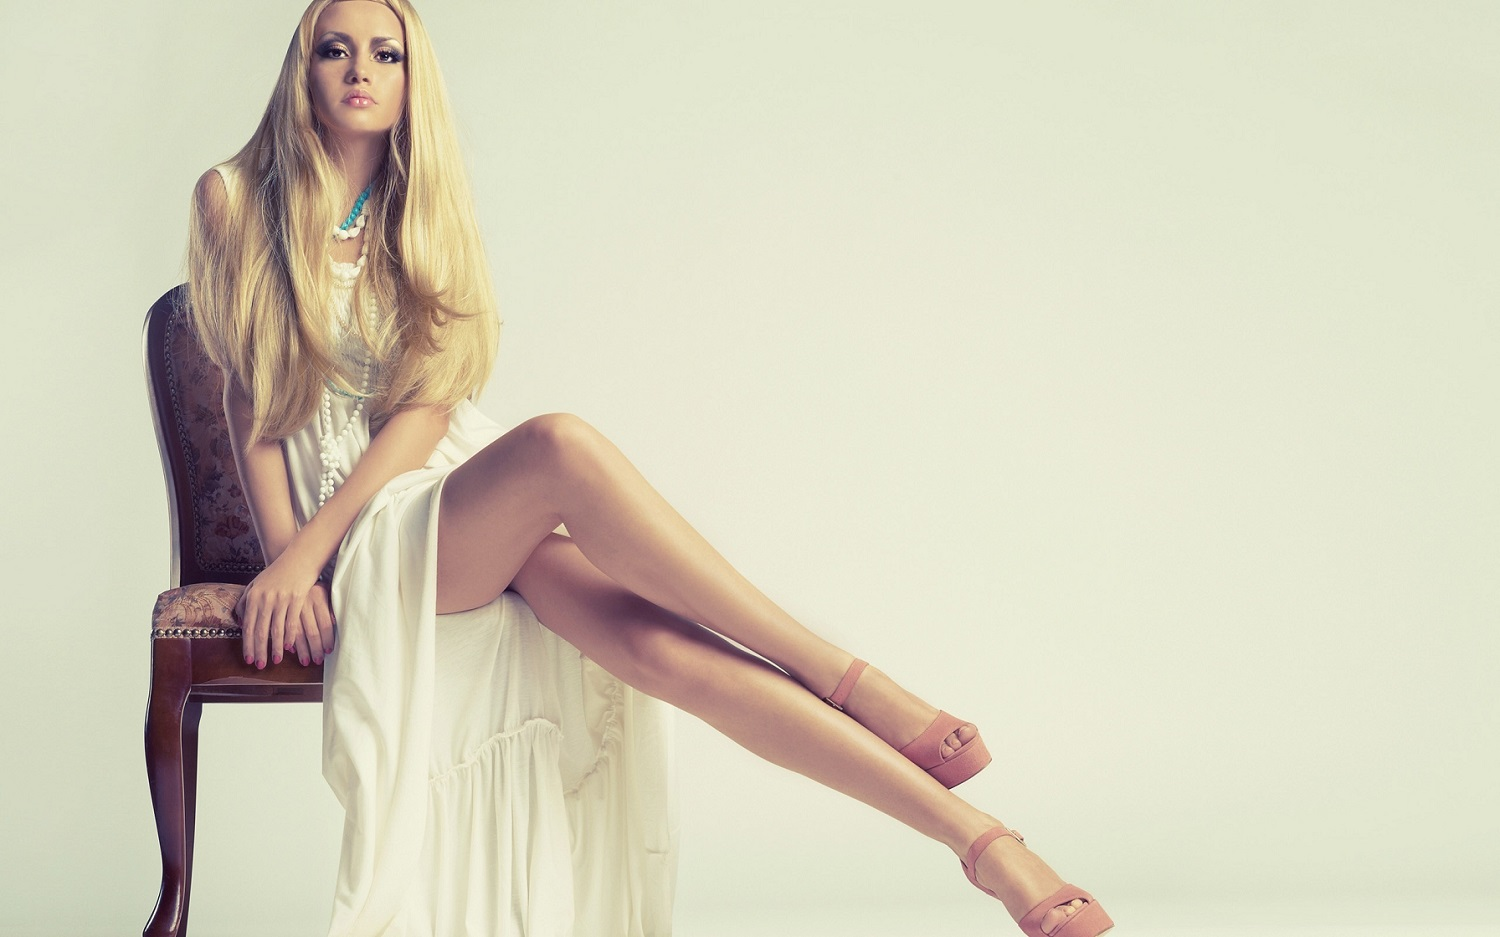 Fashion Trends - Girl with long blond hair in white dress sitting on vintage chair